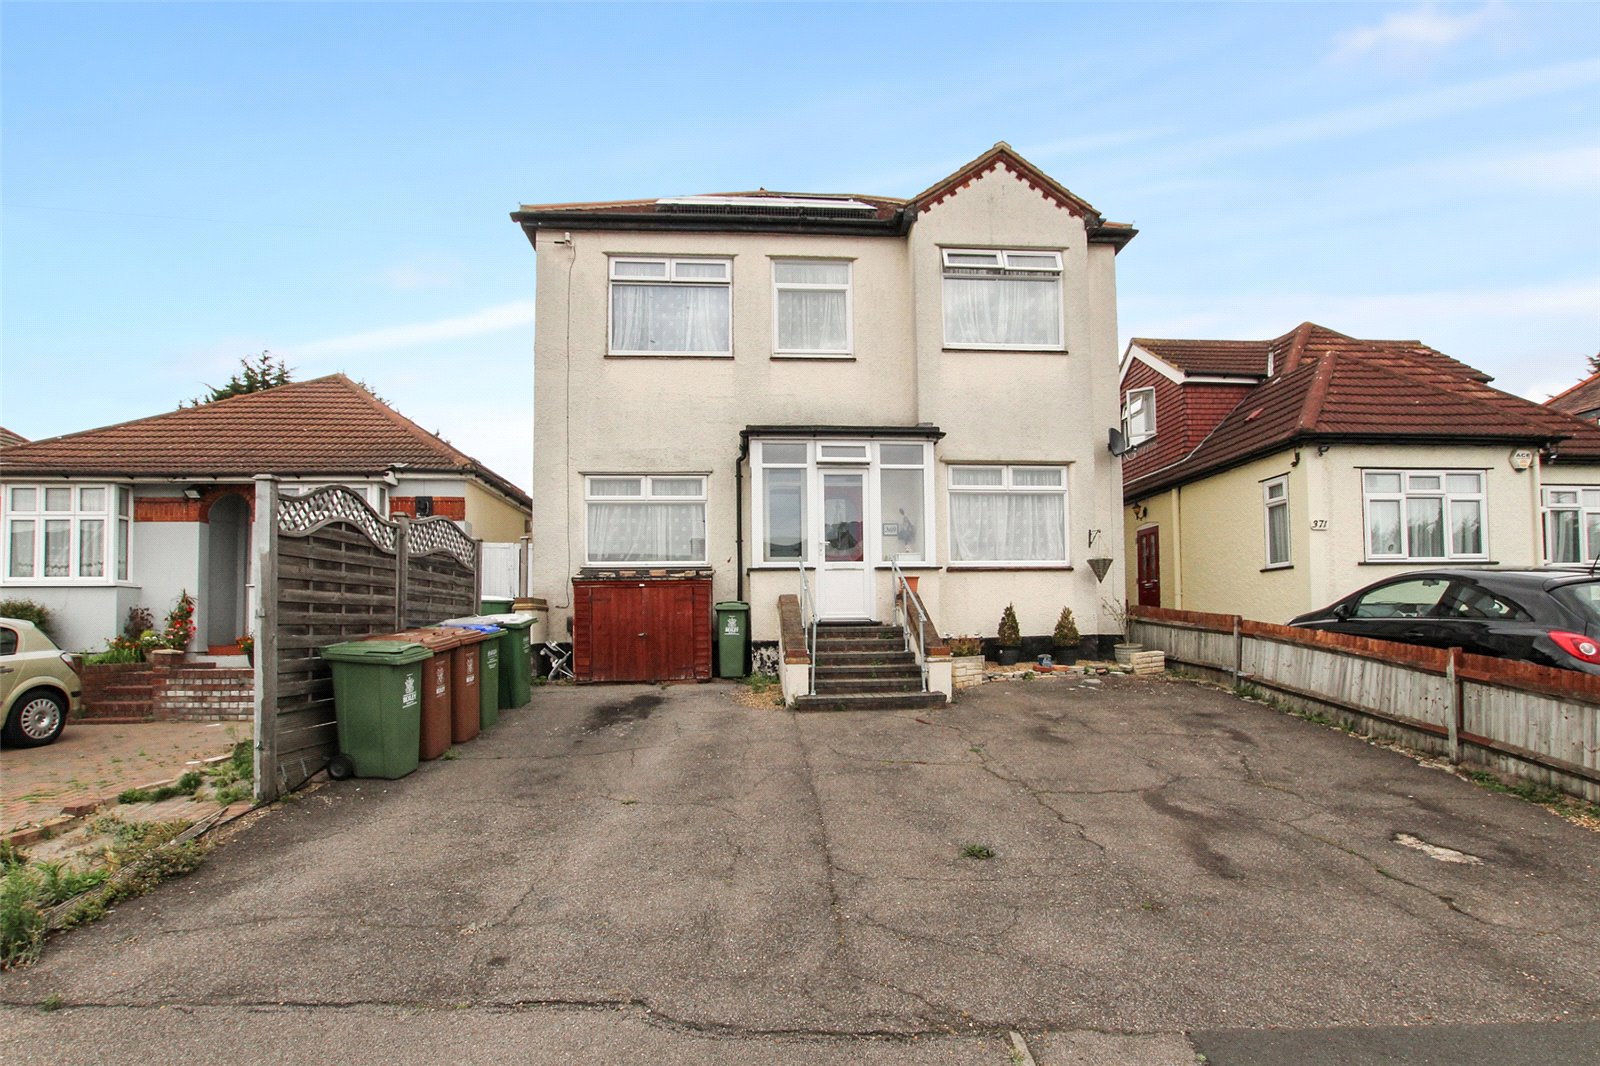 Blackfen Road, Blackfen, Sidcup, Kent, DA15